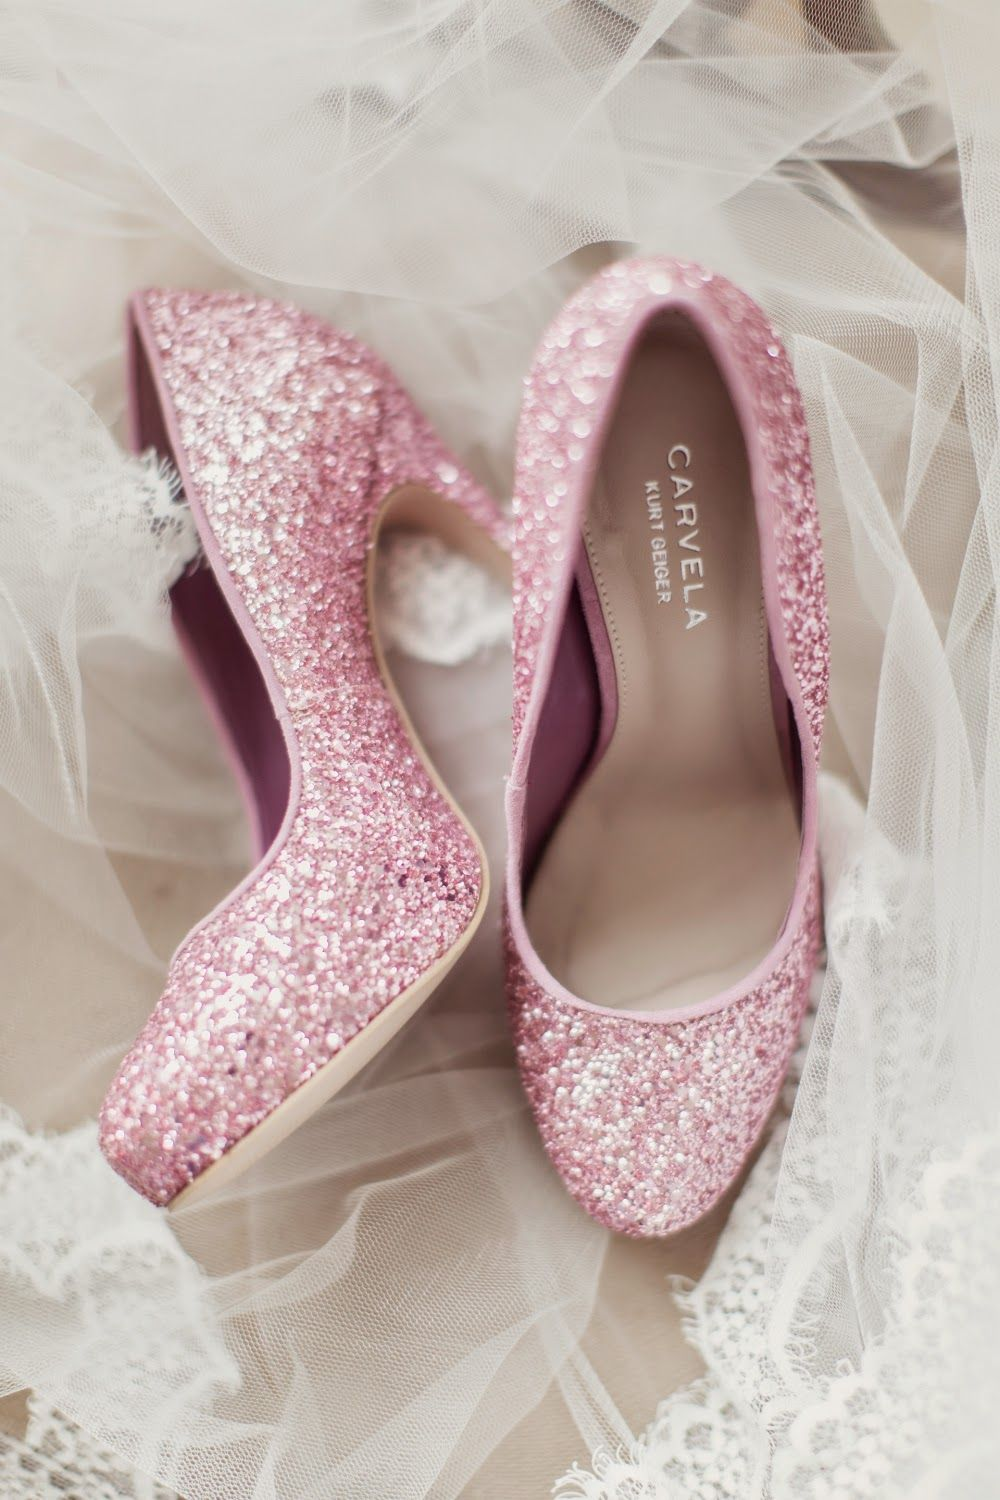 Peonie cole at home pink and glittery carvela bridal shoes